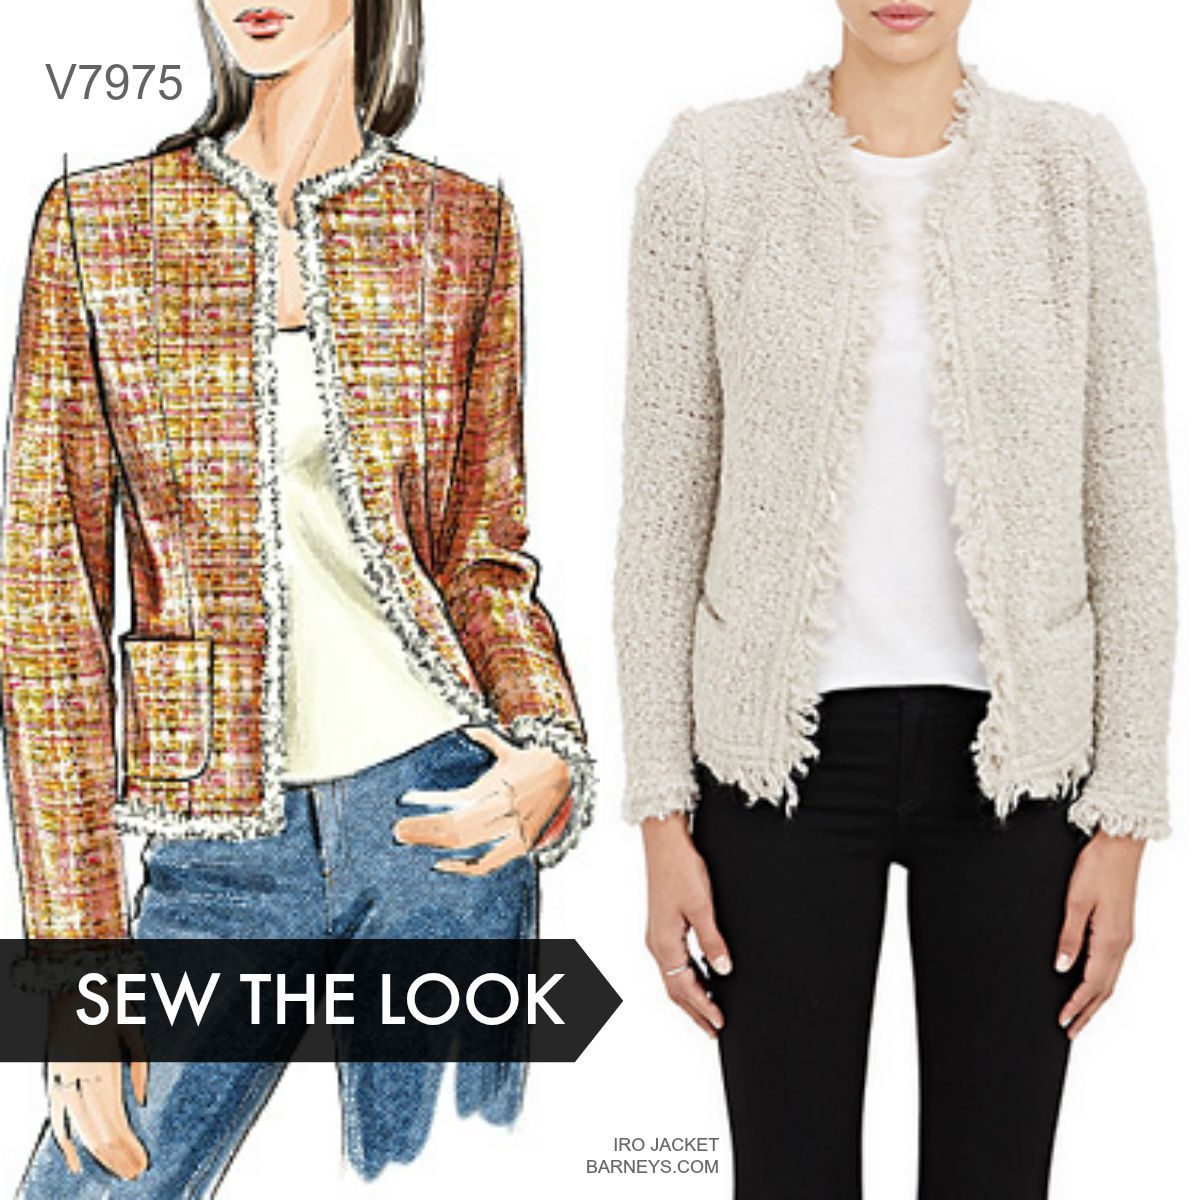 Top Sew the Look: Make a Chanel-style jacket with Vogue Patterns V7975  RJ03